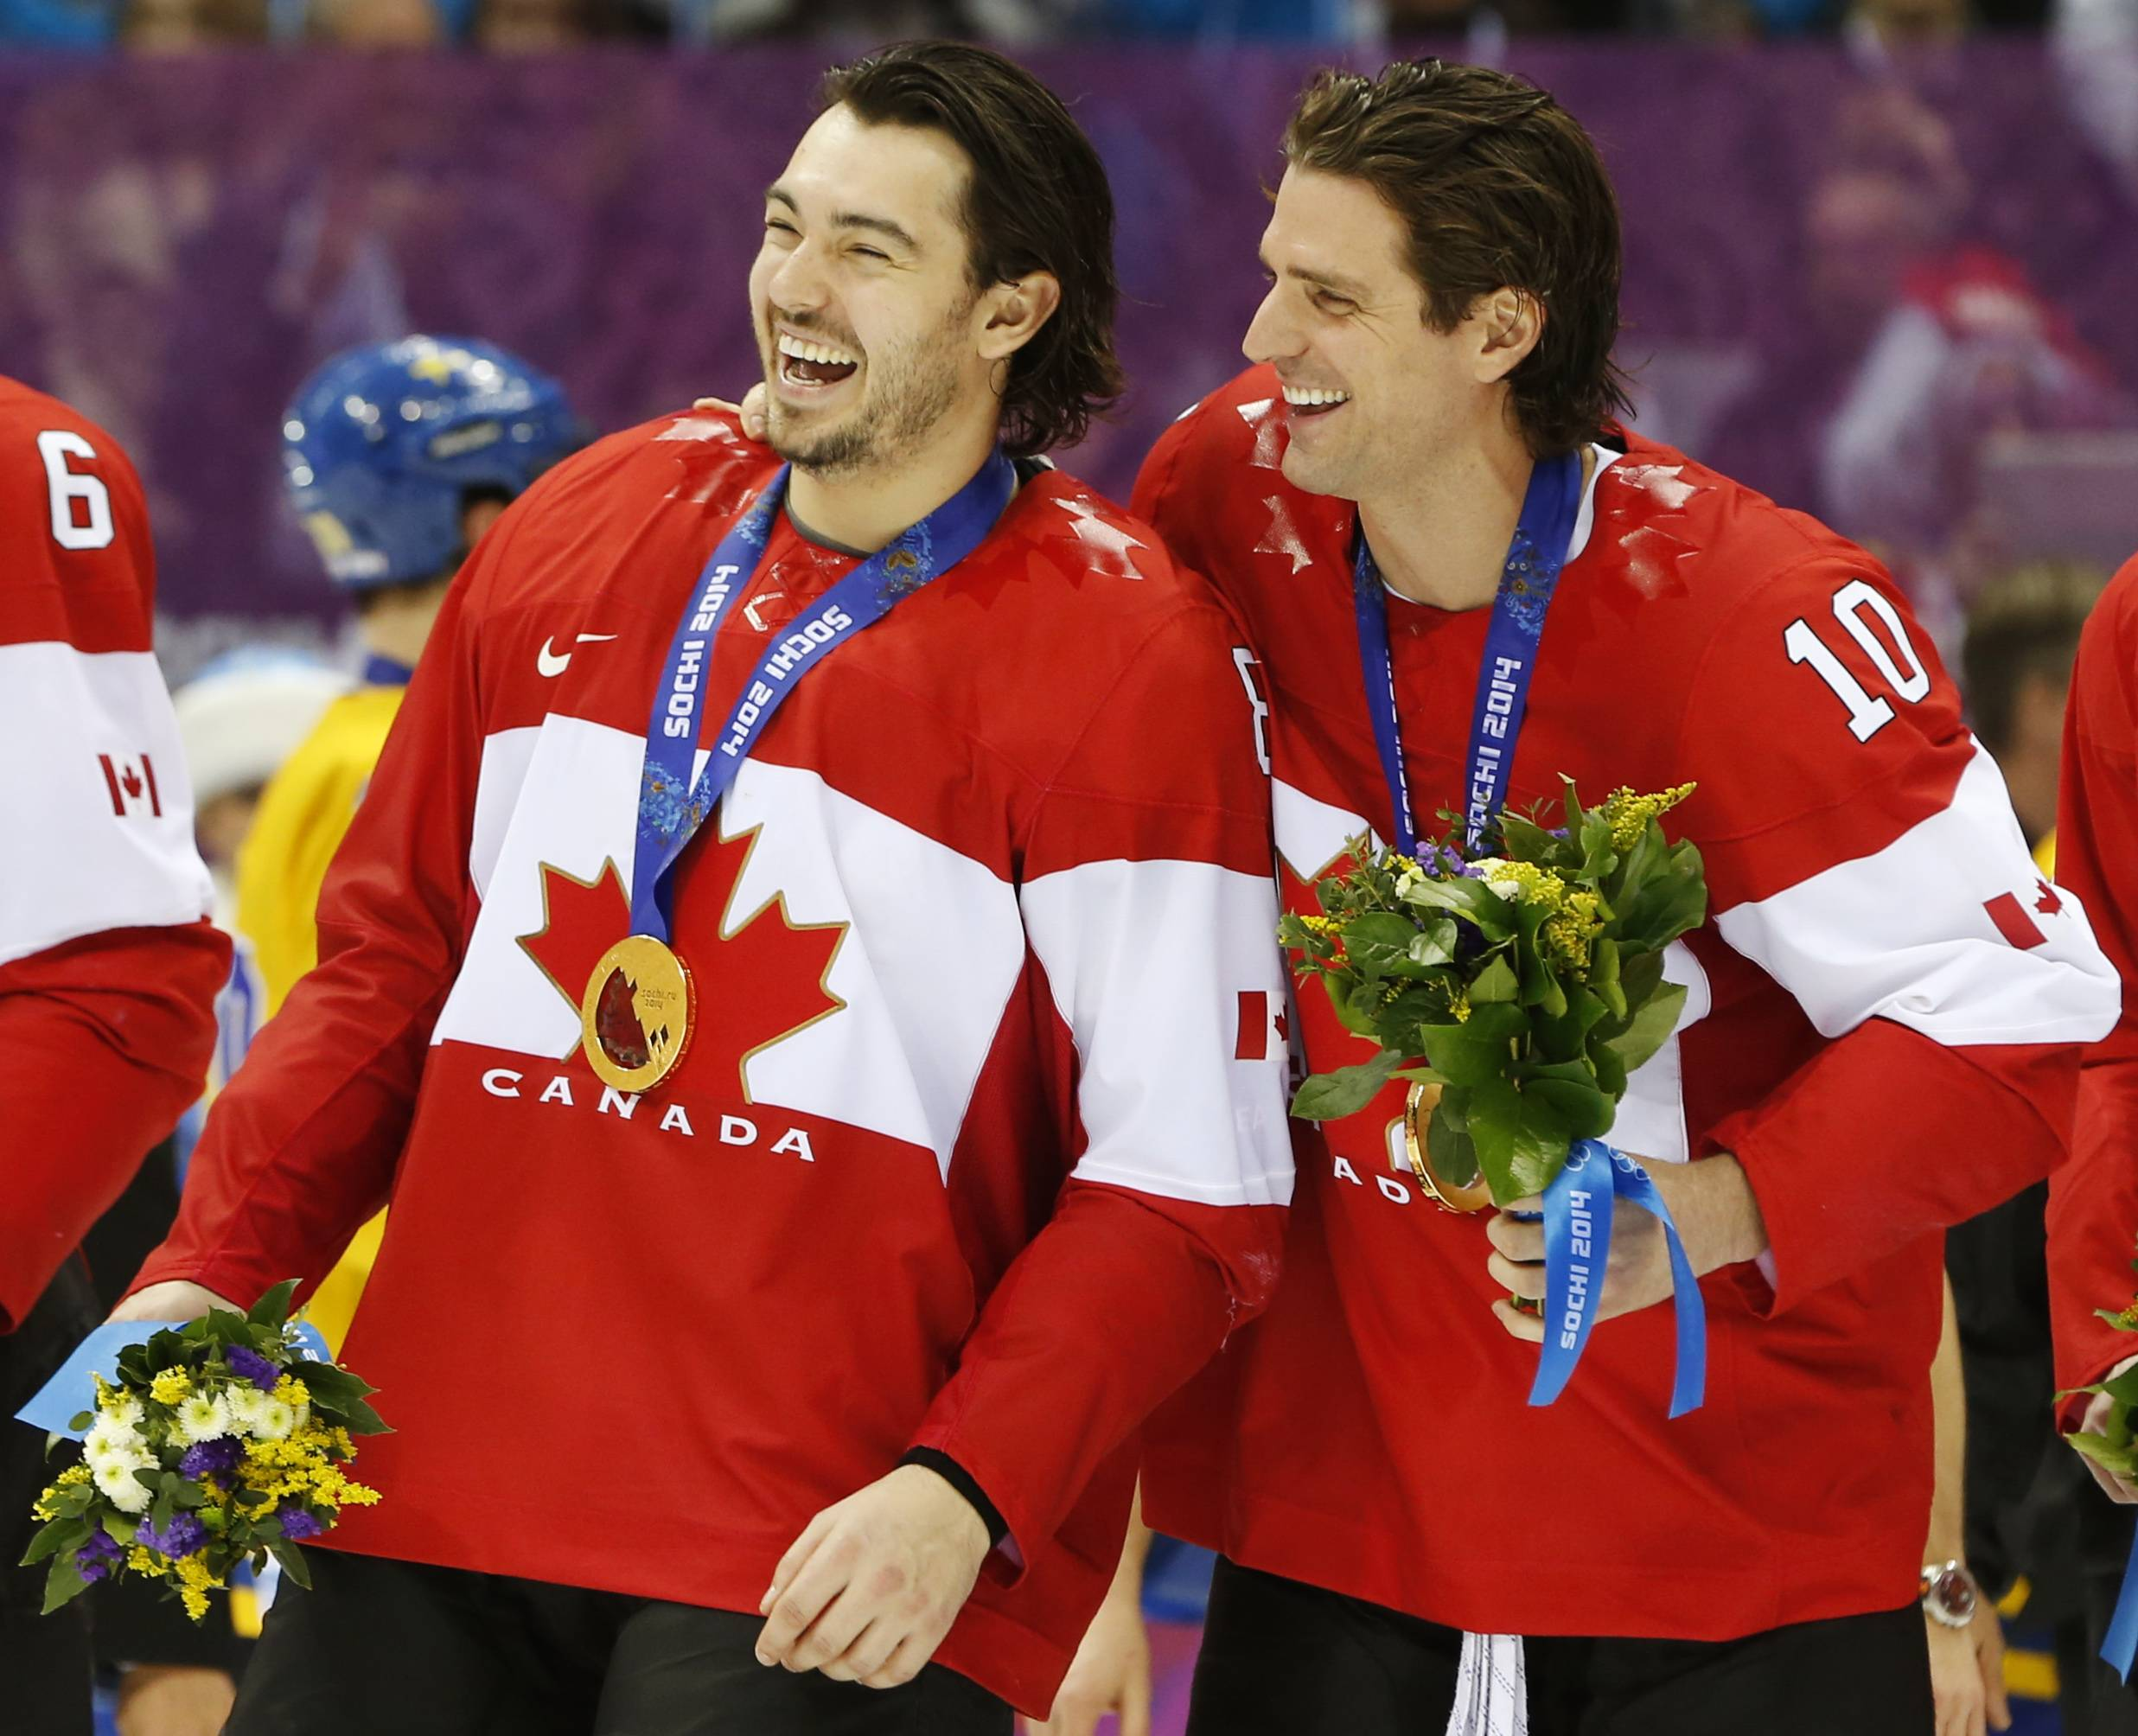 Drew Doughty of Canada (8) and Patrick Sharp of Canada (10) skate with their gold medals after the gold medal men's ice hockey game at the 2014 Winter Olympics, Sunday, Feb. 23, 2014, in Sochi, Russia. Canada defeated Sweden 3-0 to win the gold medal in the tournament.